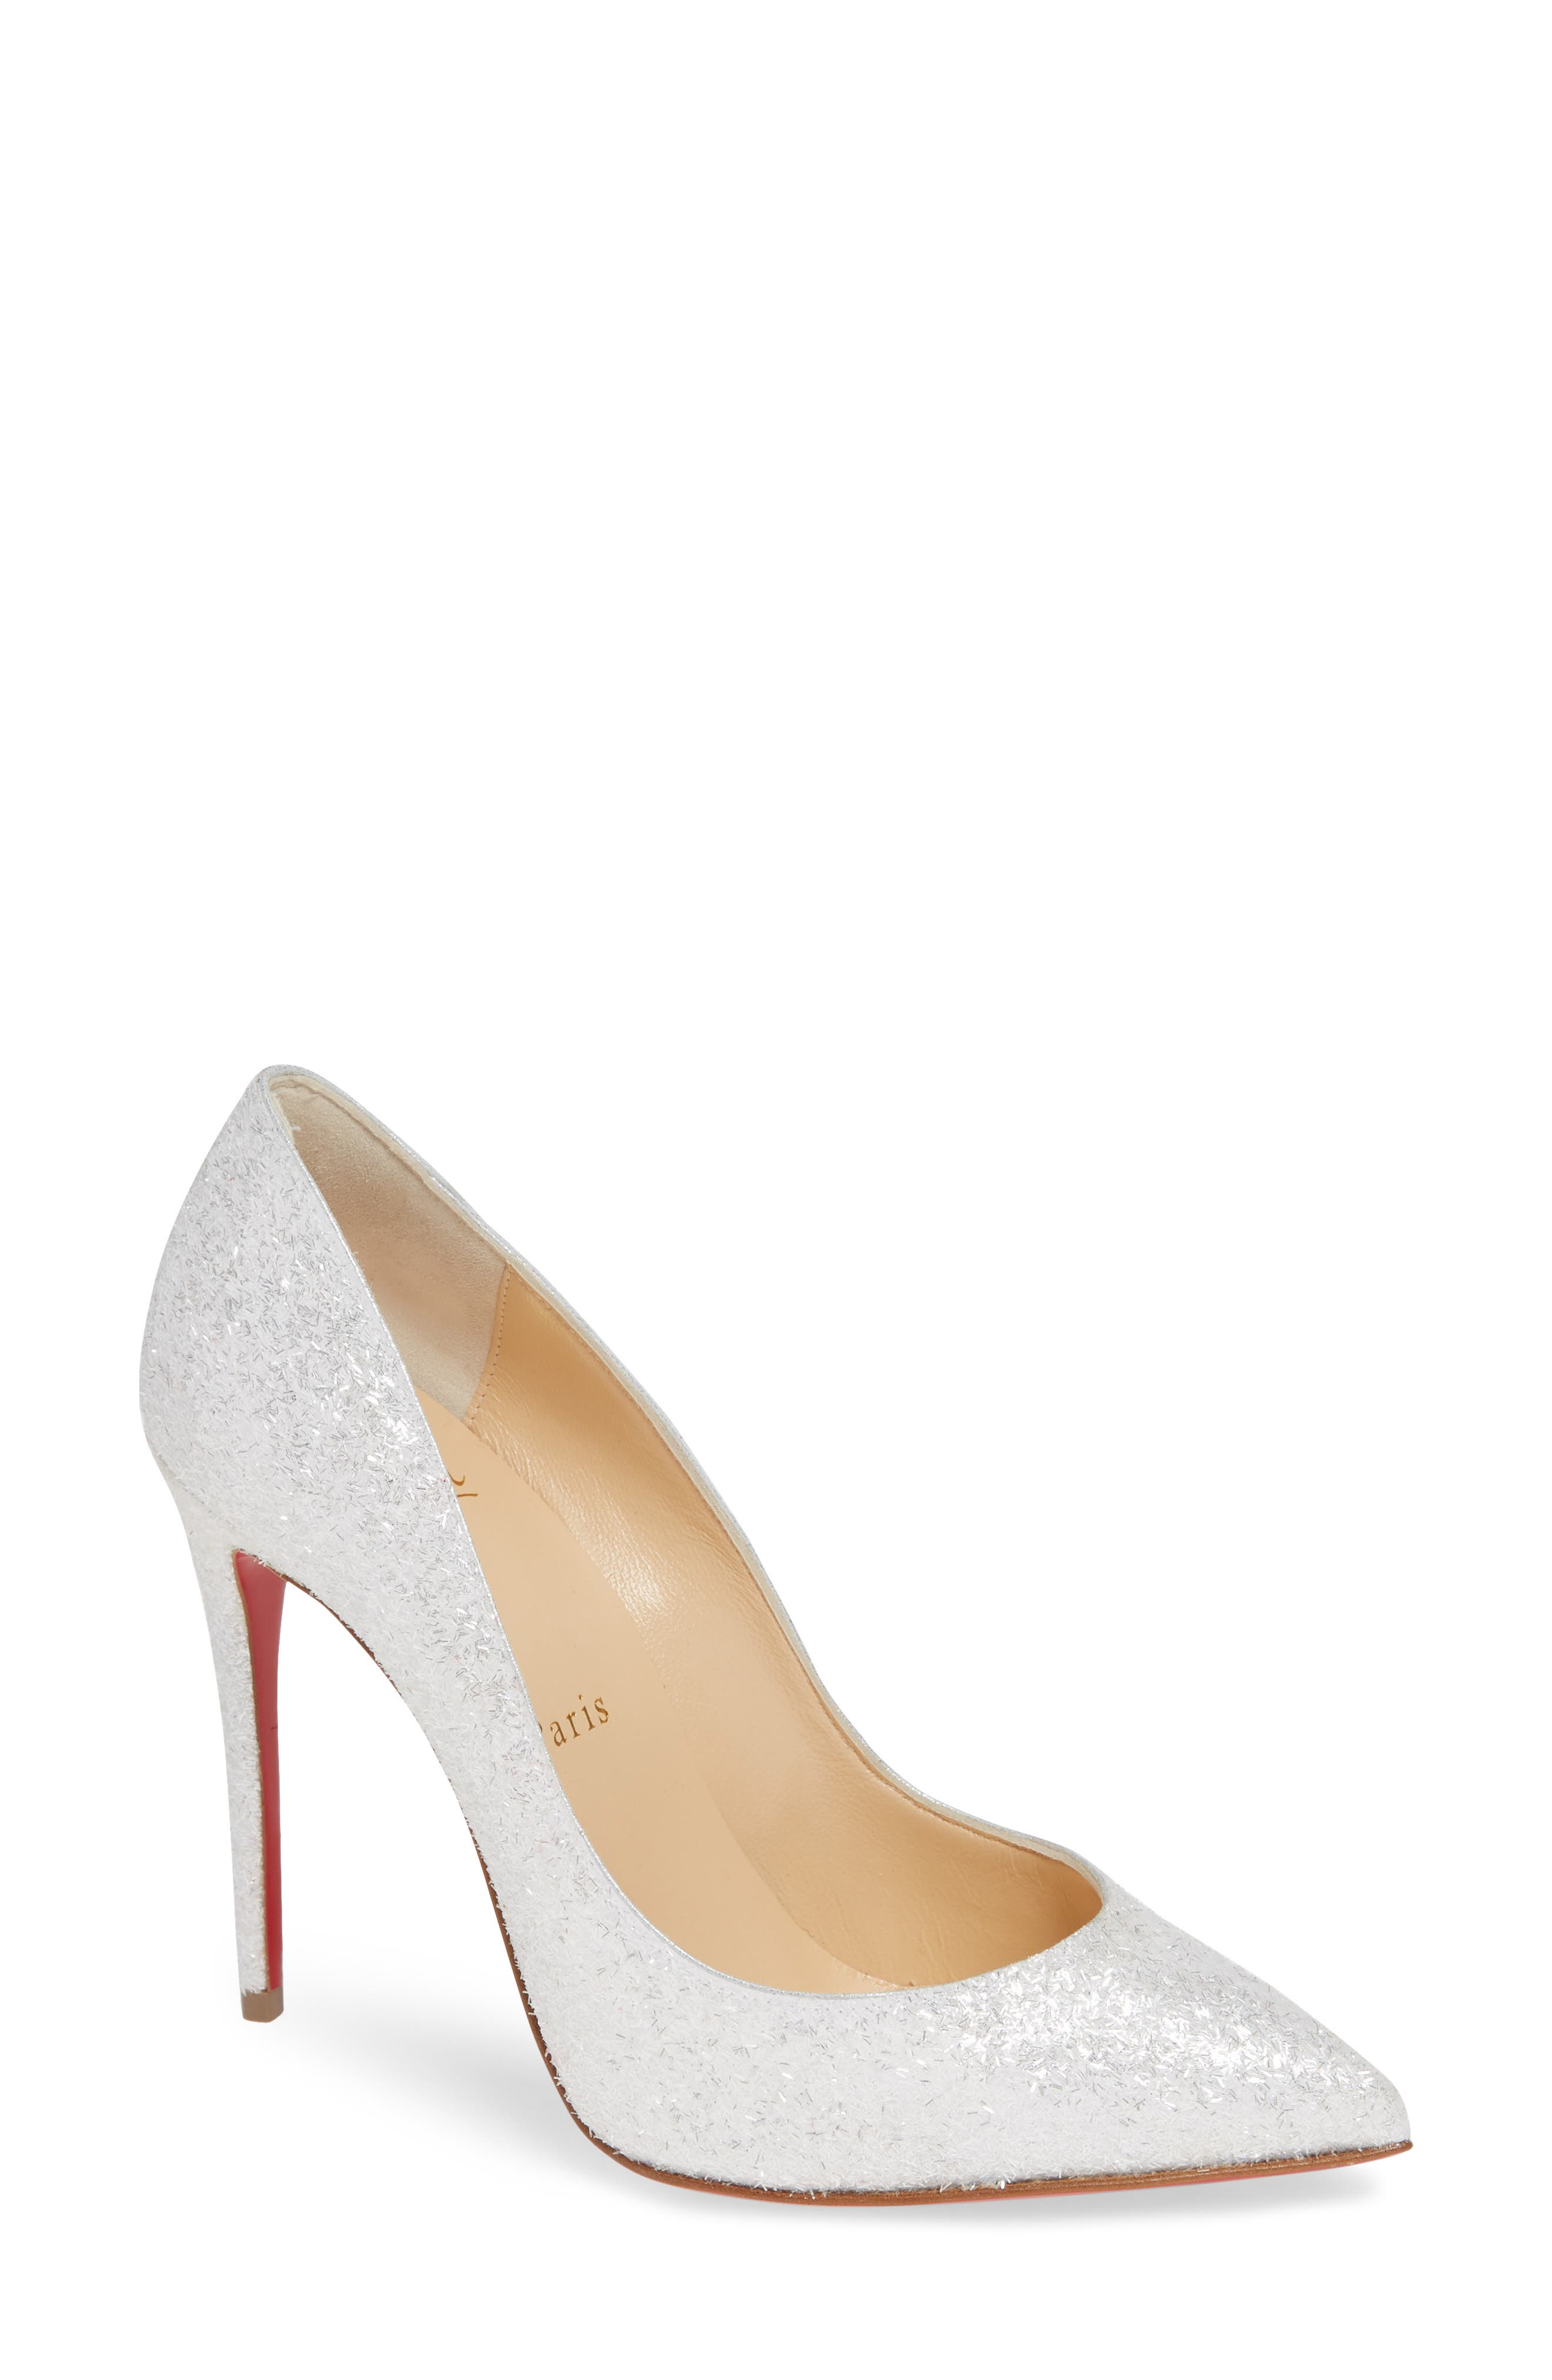 CHRISTIAN LOUBOUTIN, Pigalle Follies Pointy Toe Pump, Main thumbnail 1, color, WHITE GLITTER